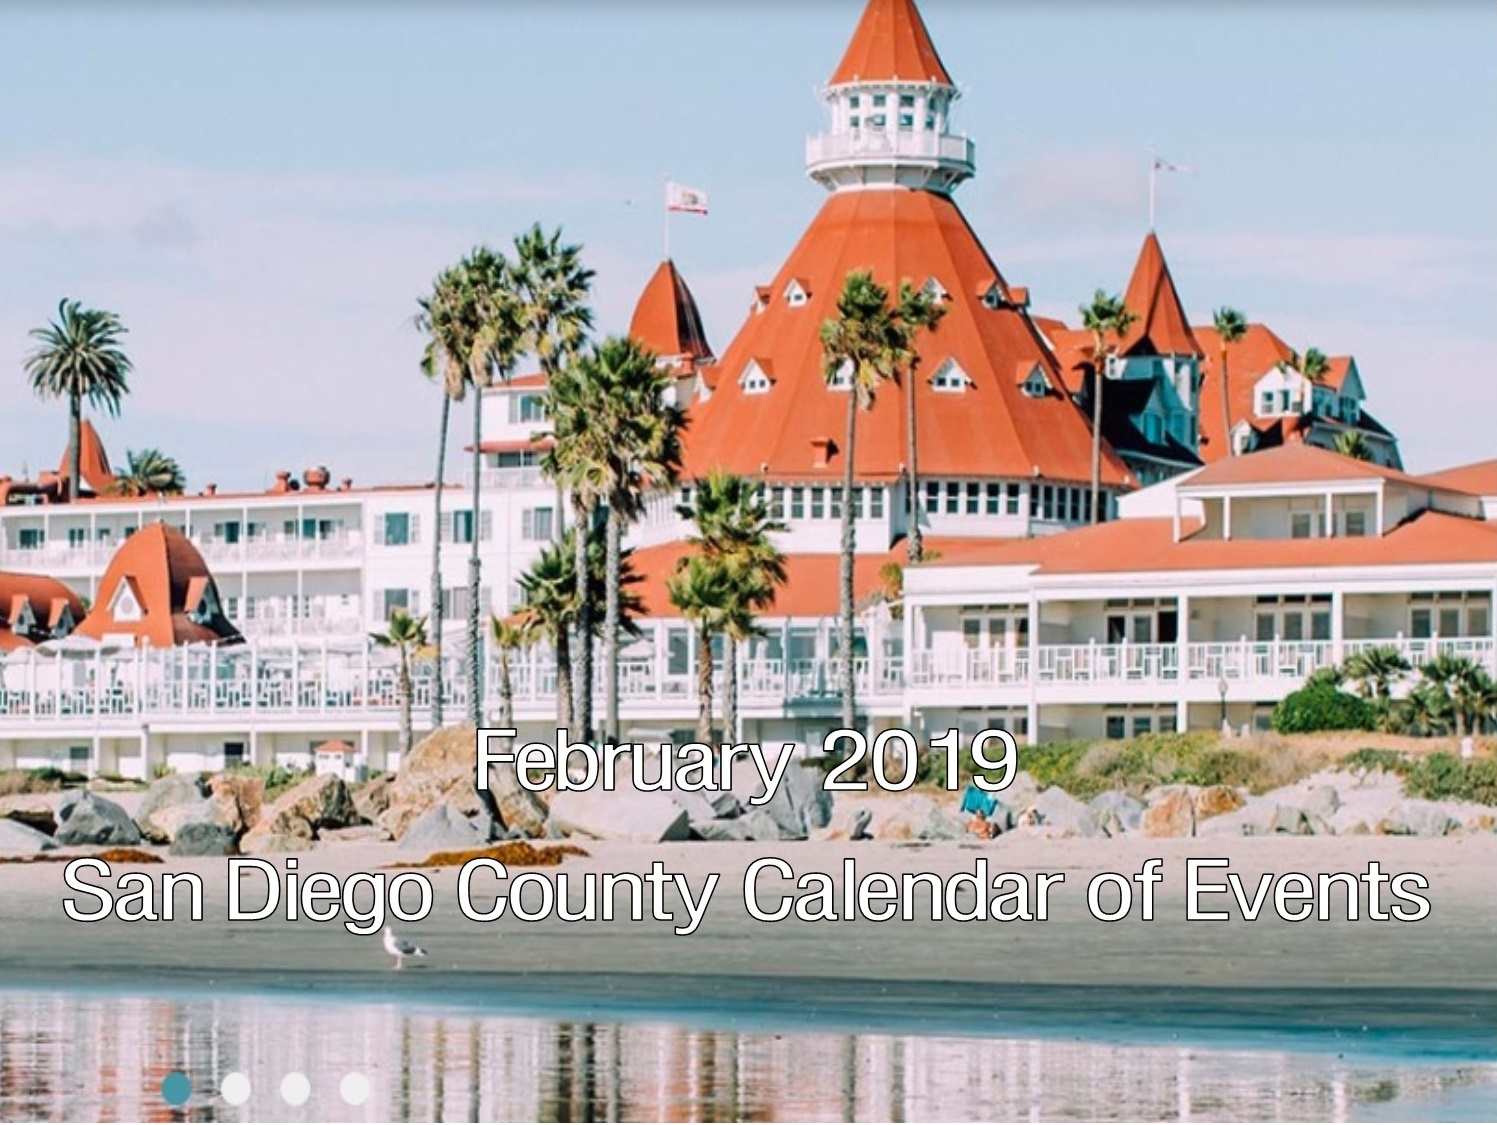 Calendar Of Events In San Diego February 2019 February 2019 San Diego County Calendar Of Events